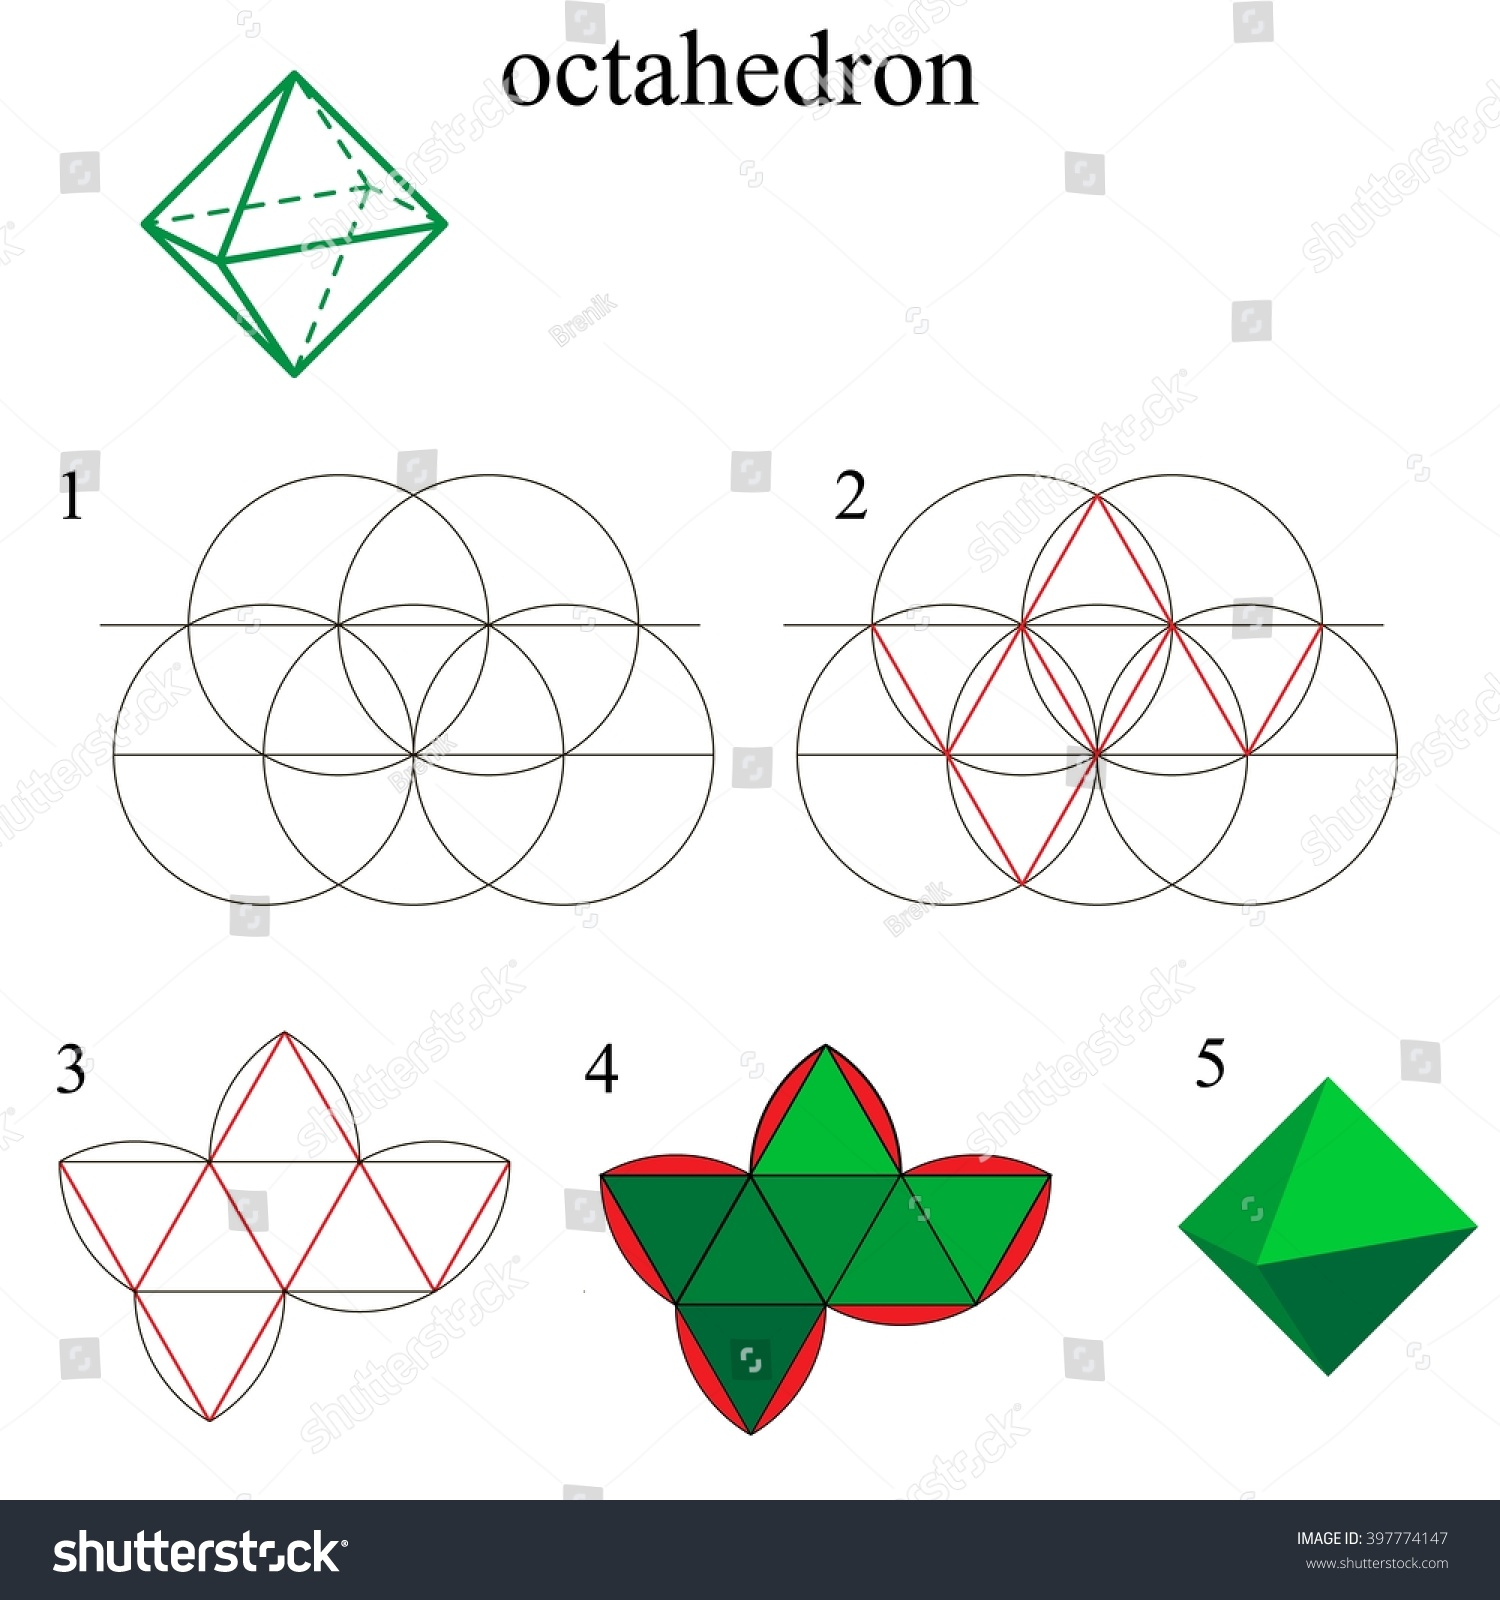 Constructing An Octahedron Using Compass And Straightedge A Polyhedron With Eight Faces Convex